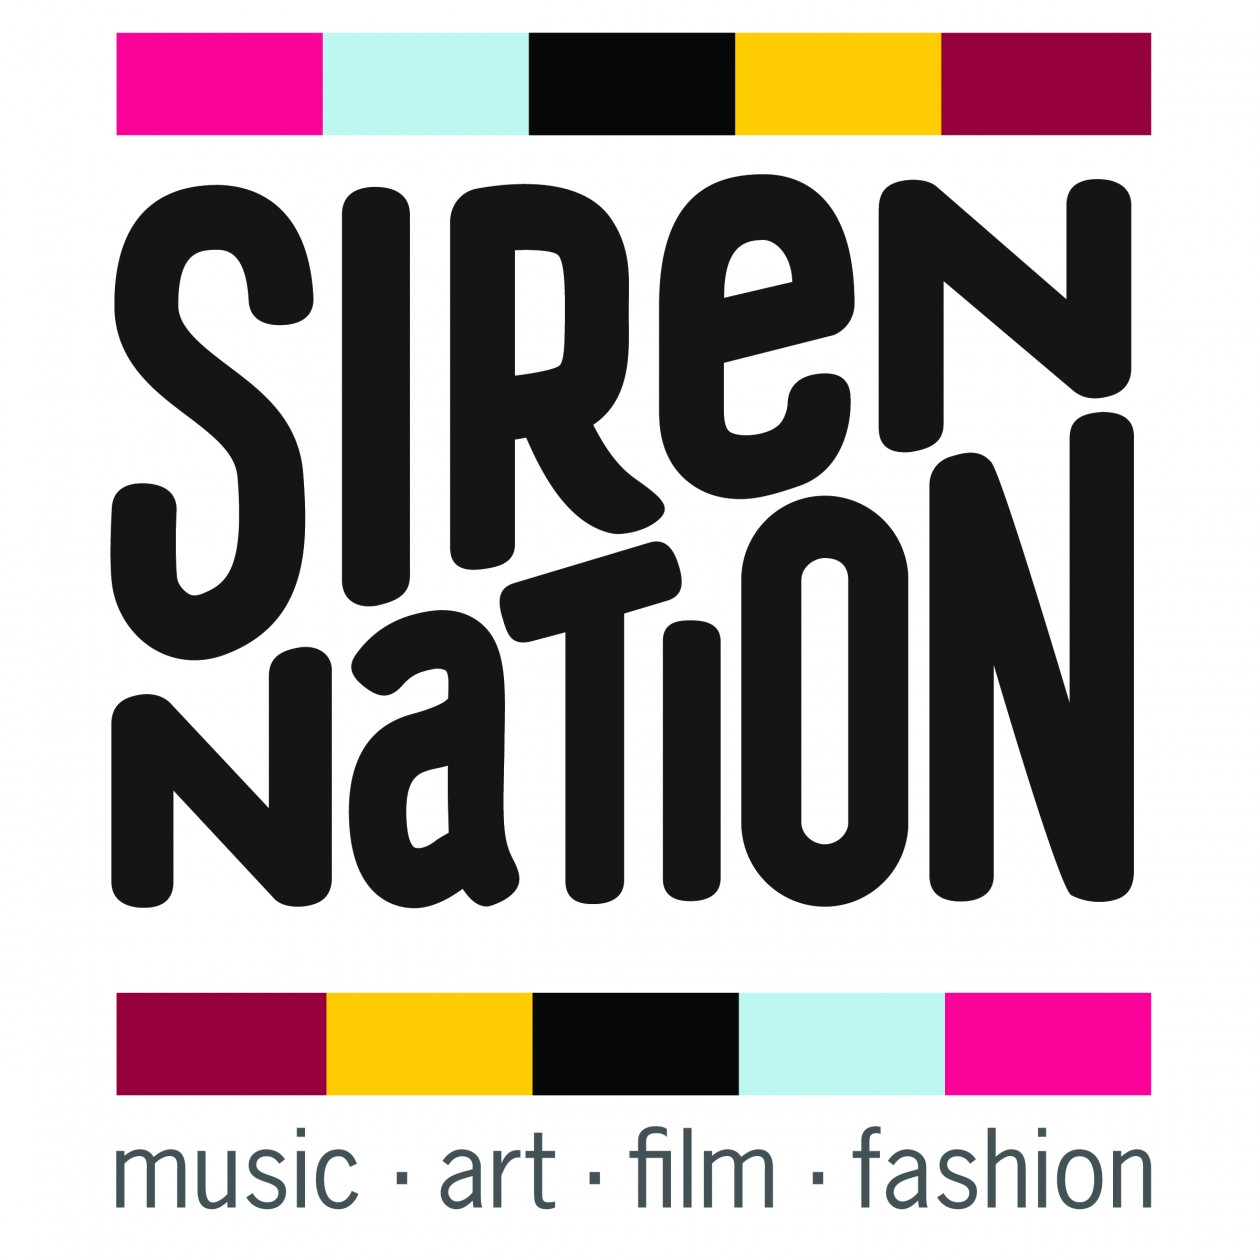 2011 Siren Nation Film Festival